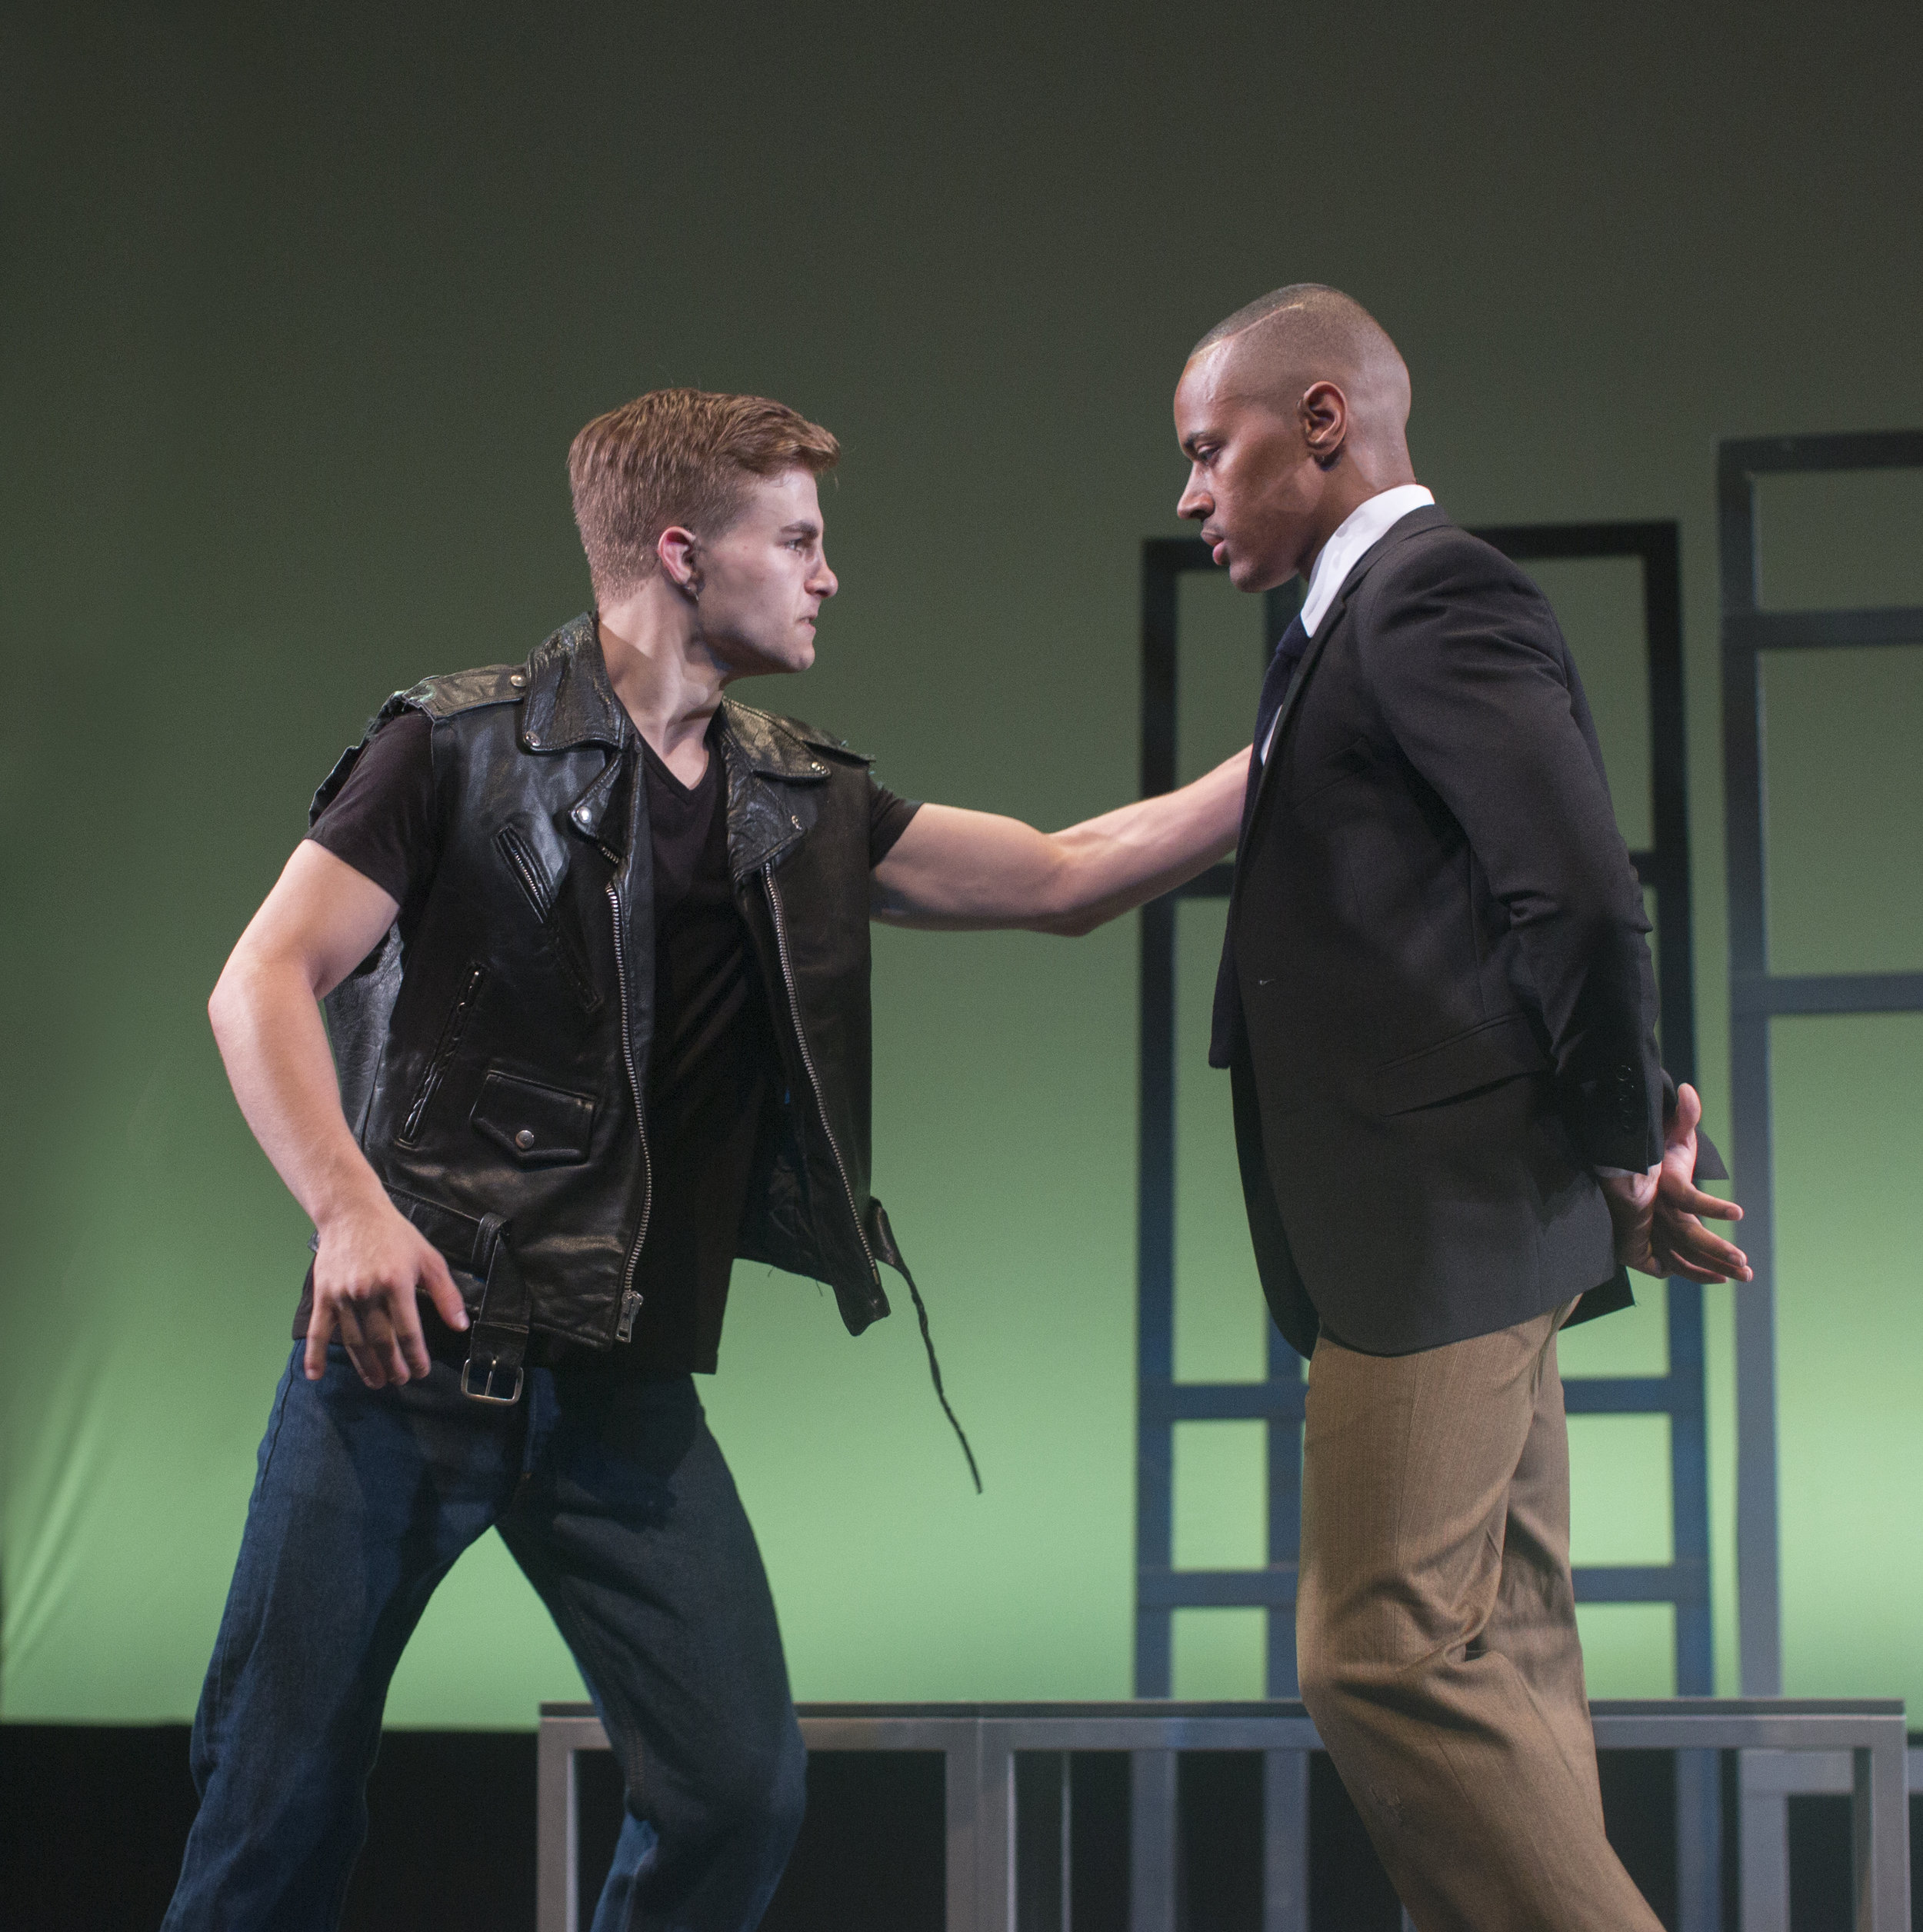 Michael Nigro and Anthony Chatmon II in FREEDOM RIDERS at NYMF 2017 - photo by Mia Winston.jpg